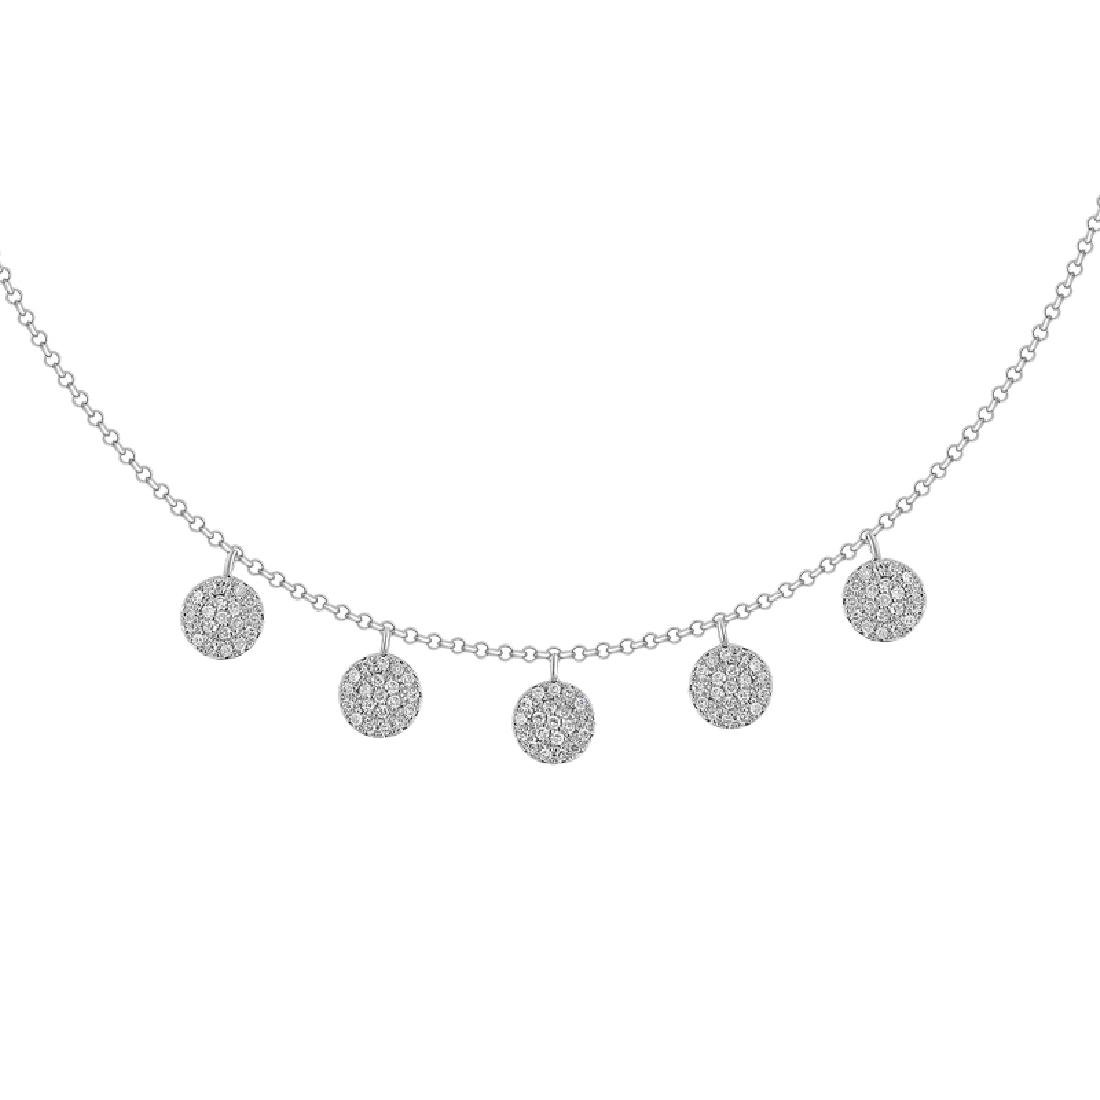 14KT White Gold Diamond Necklace